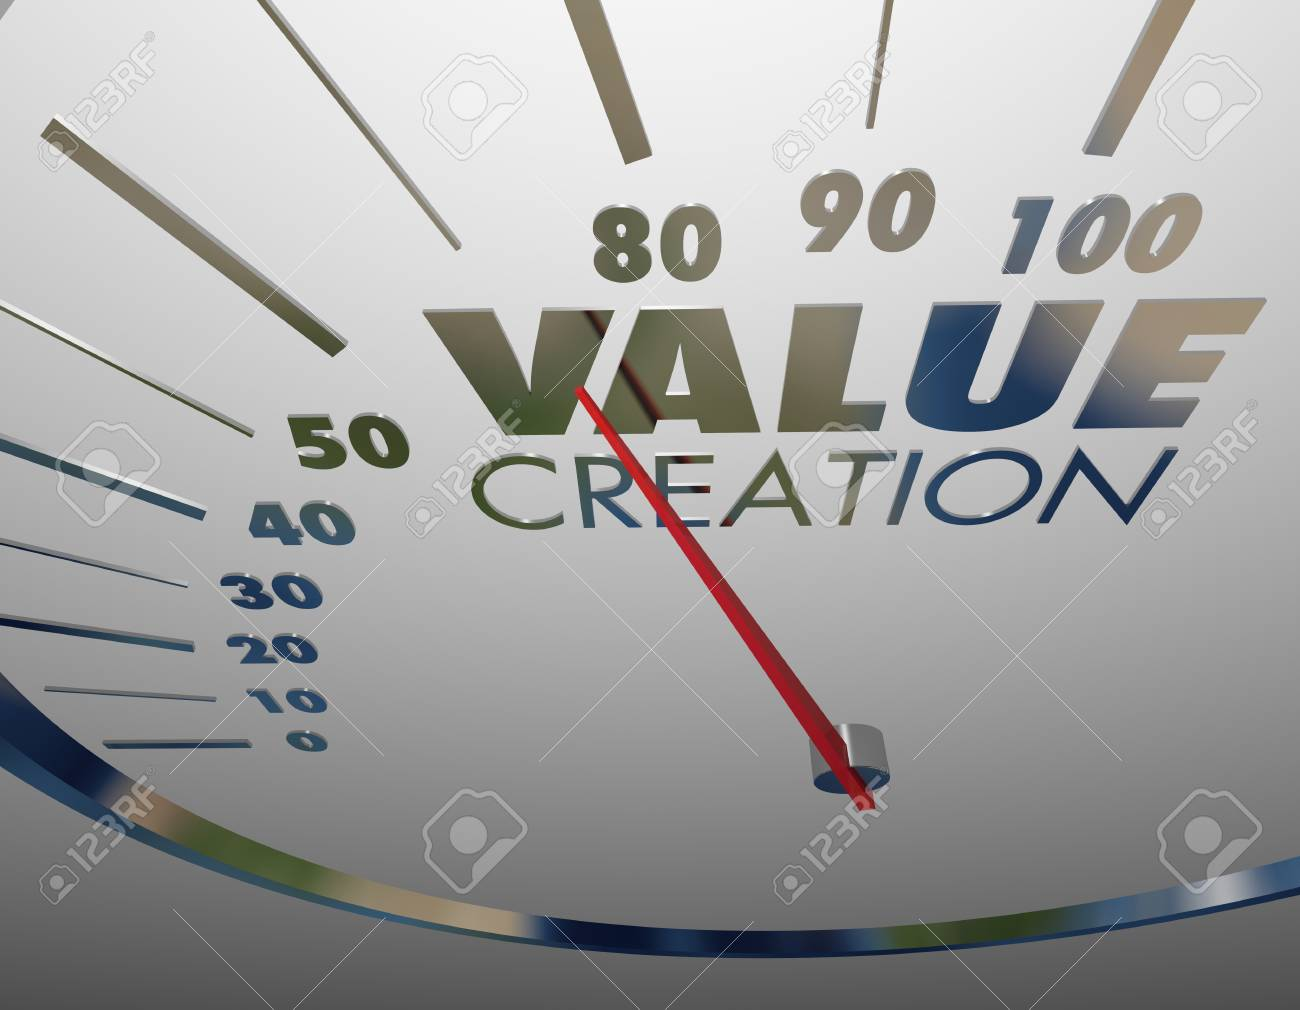 Value Creation Speedometer Level Rate Valuable Content Assets 3d Illustration - 97904442